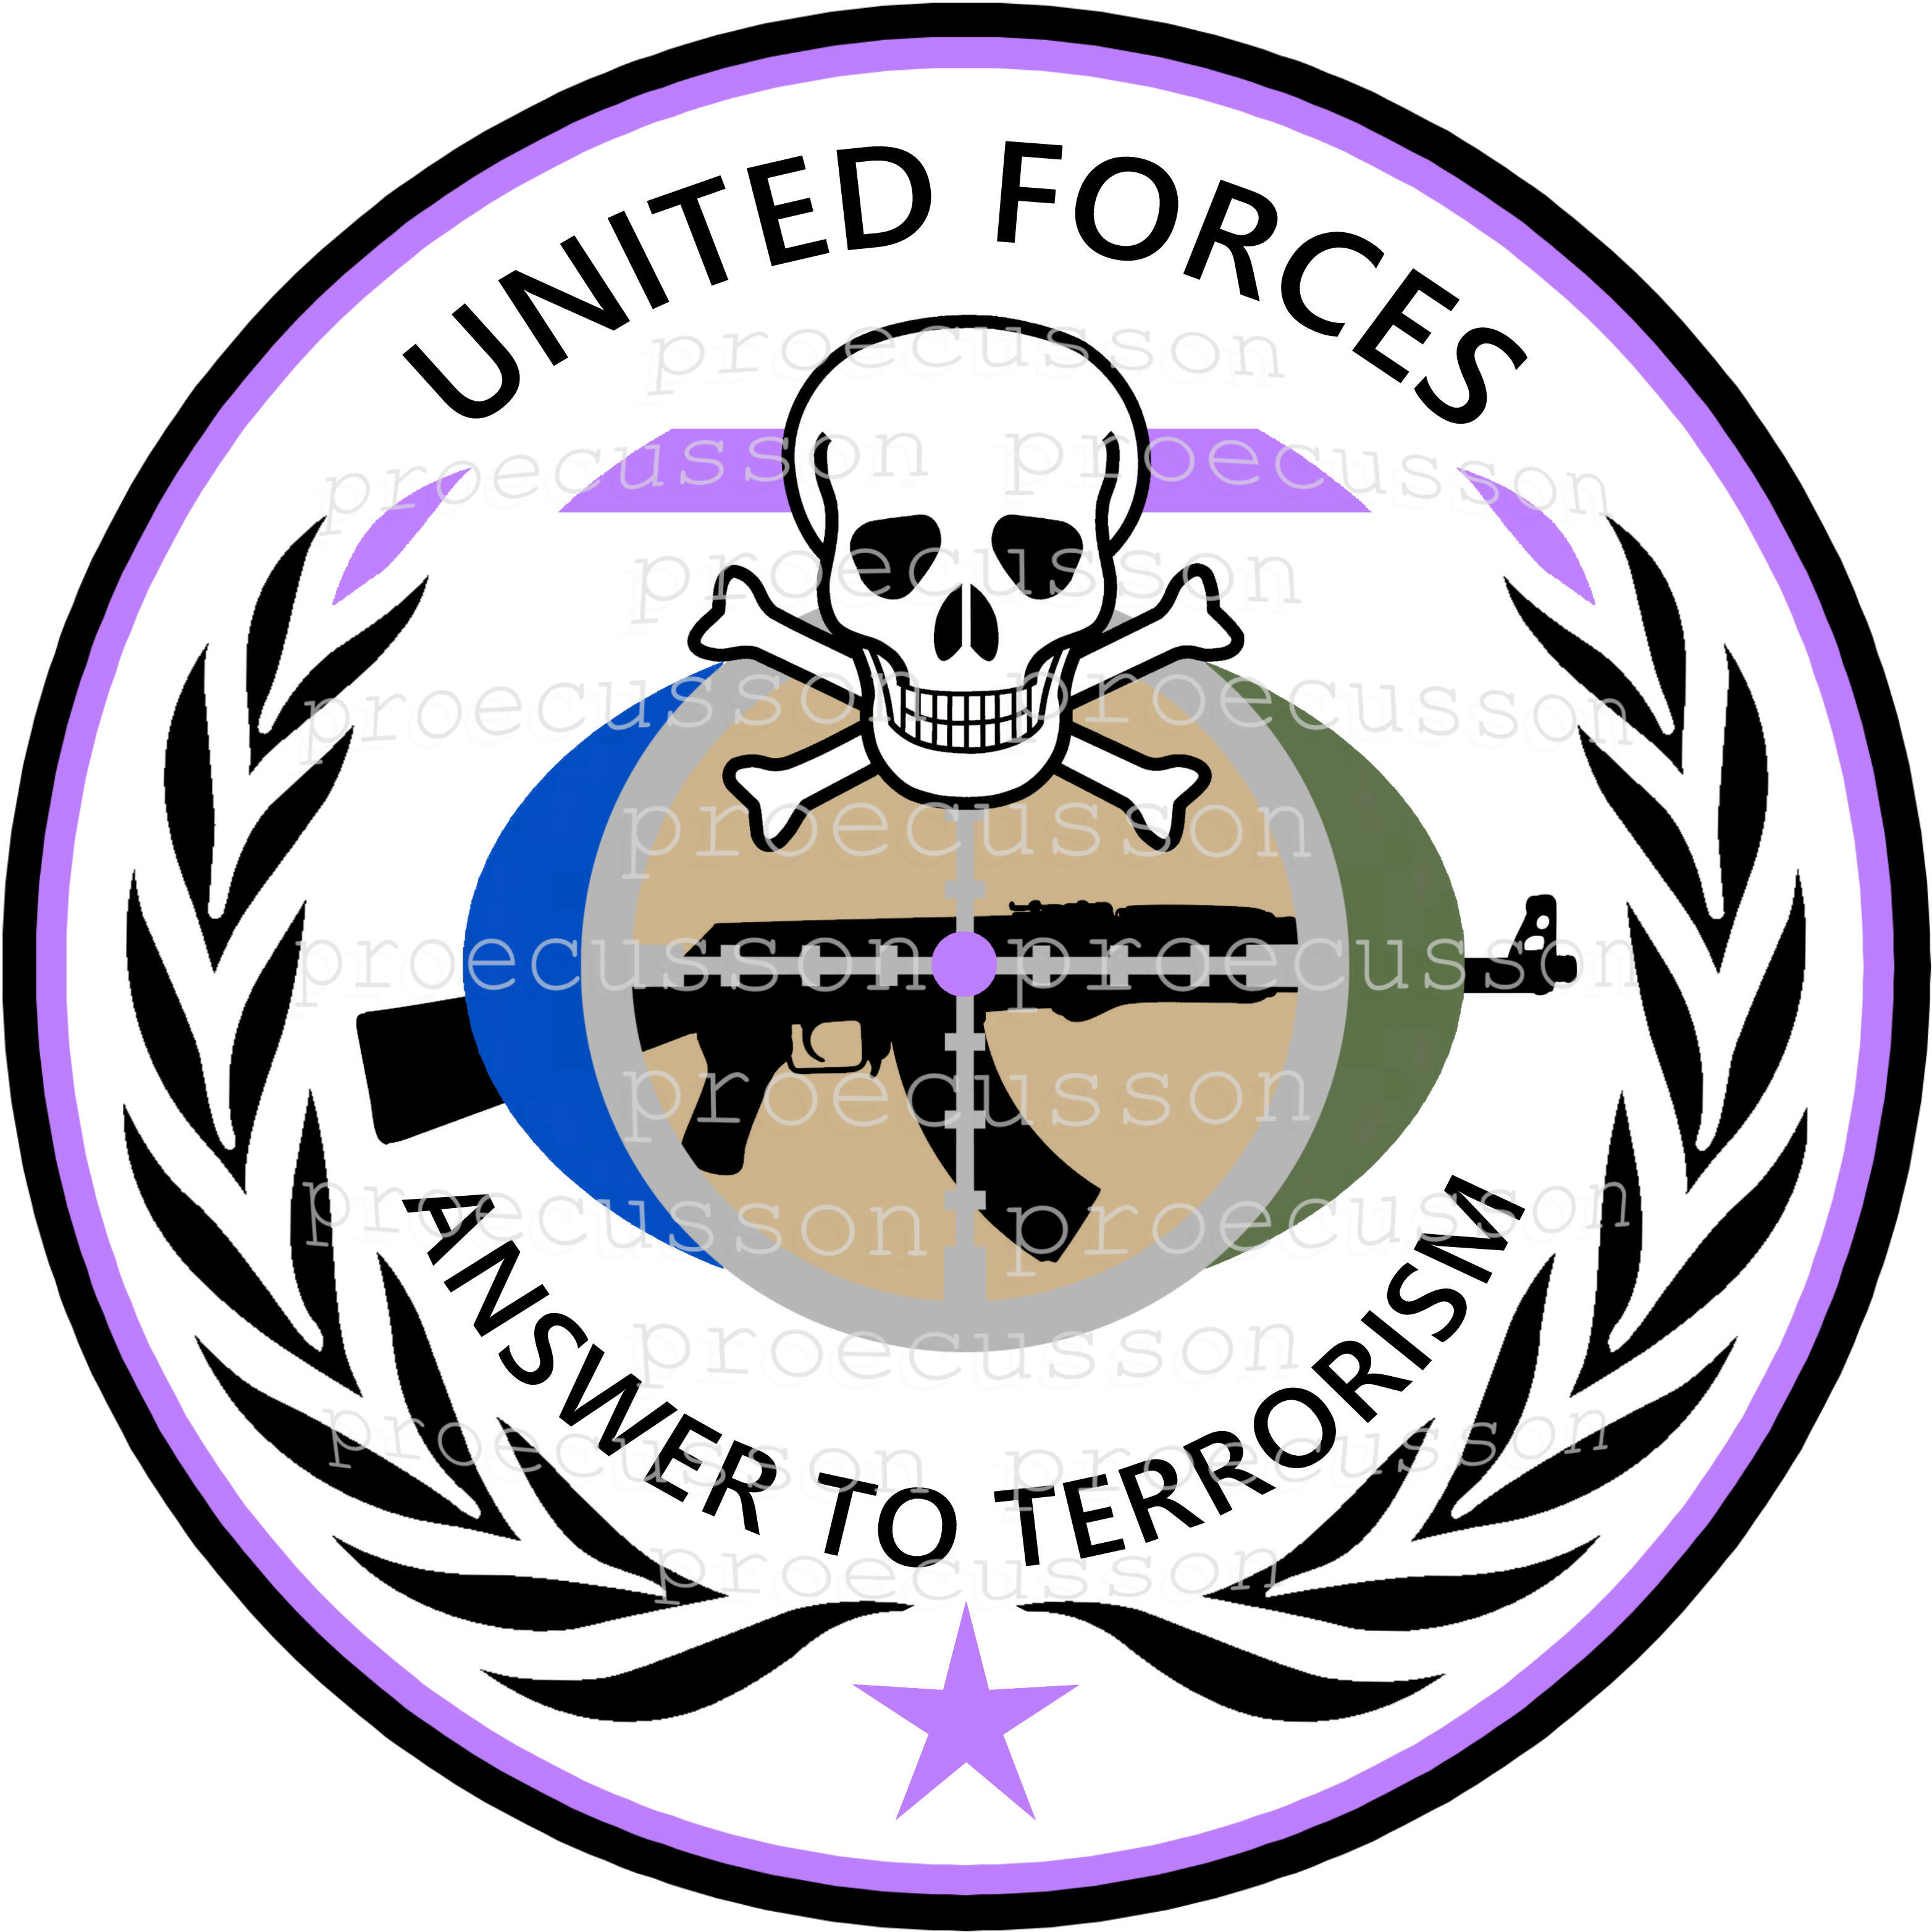 UNITED FORCES ANSWER TO TERRORISM